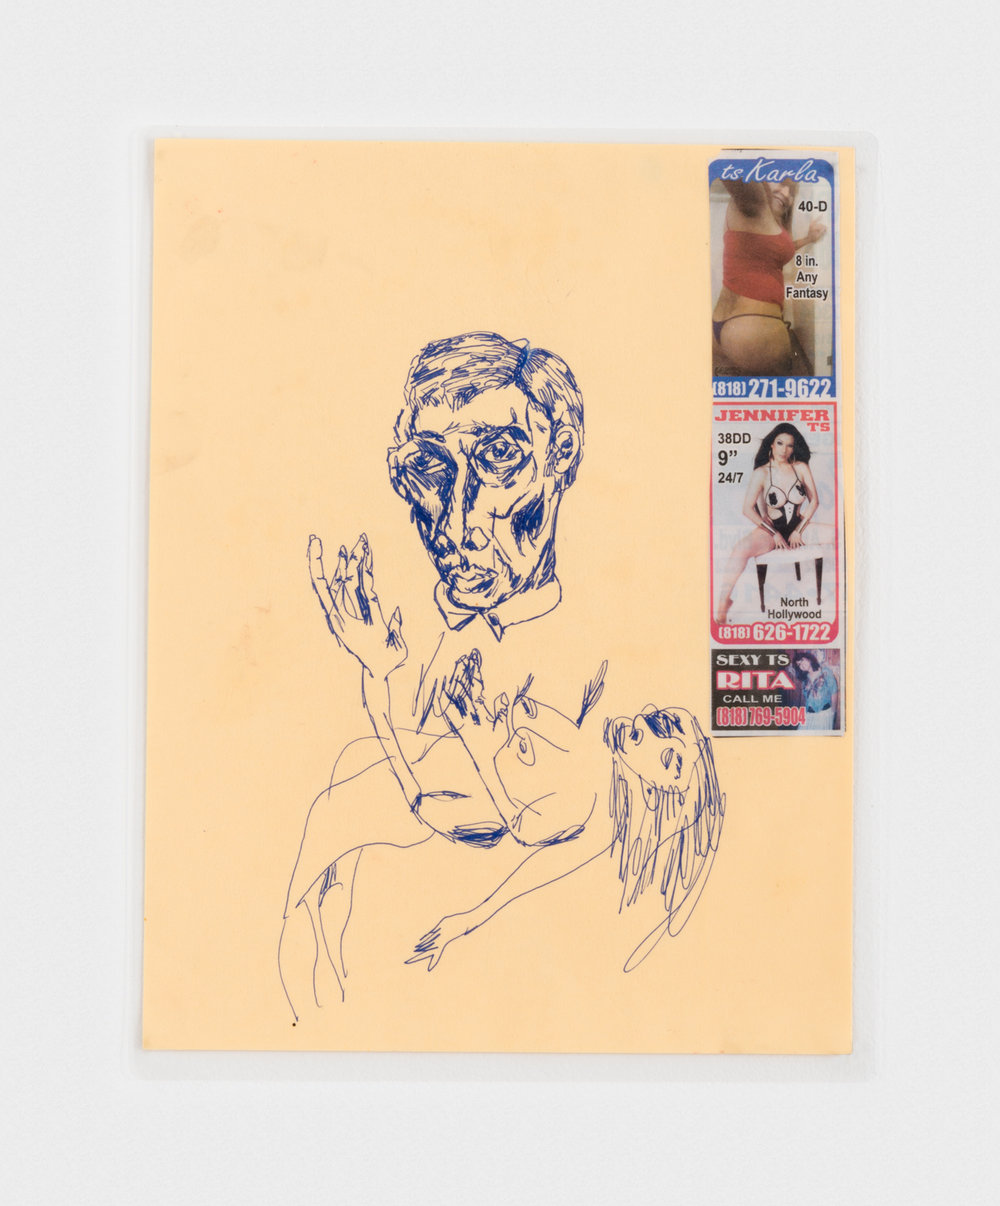 Alex Becerra Women Stress Me Out 2016 Ink and collage on paper (laminated) 11 x 8 1/2 in (27.94h x 21.59w cm) AB155